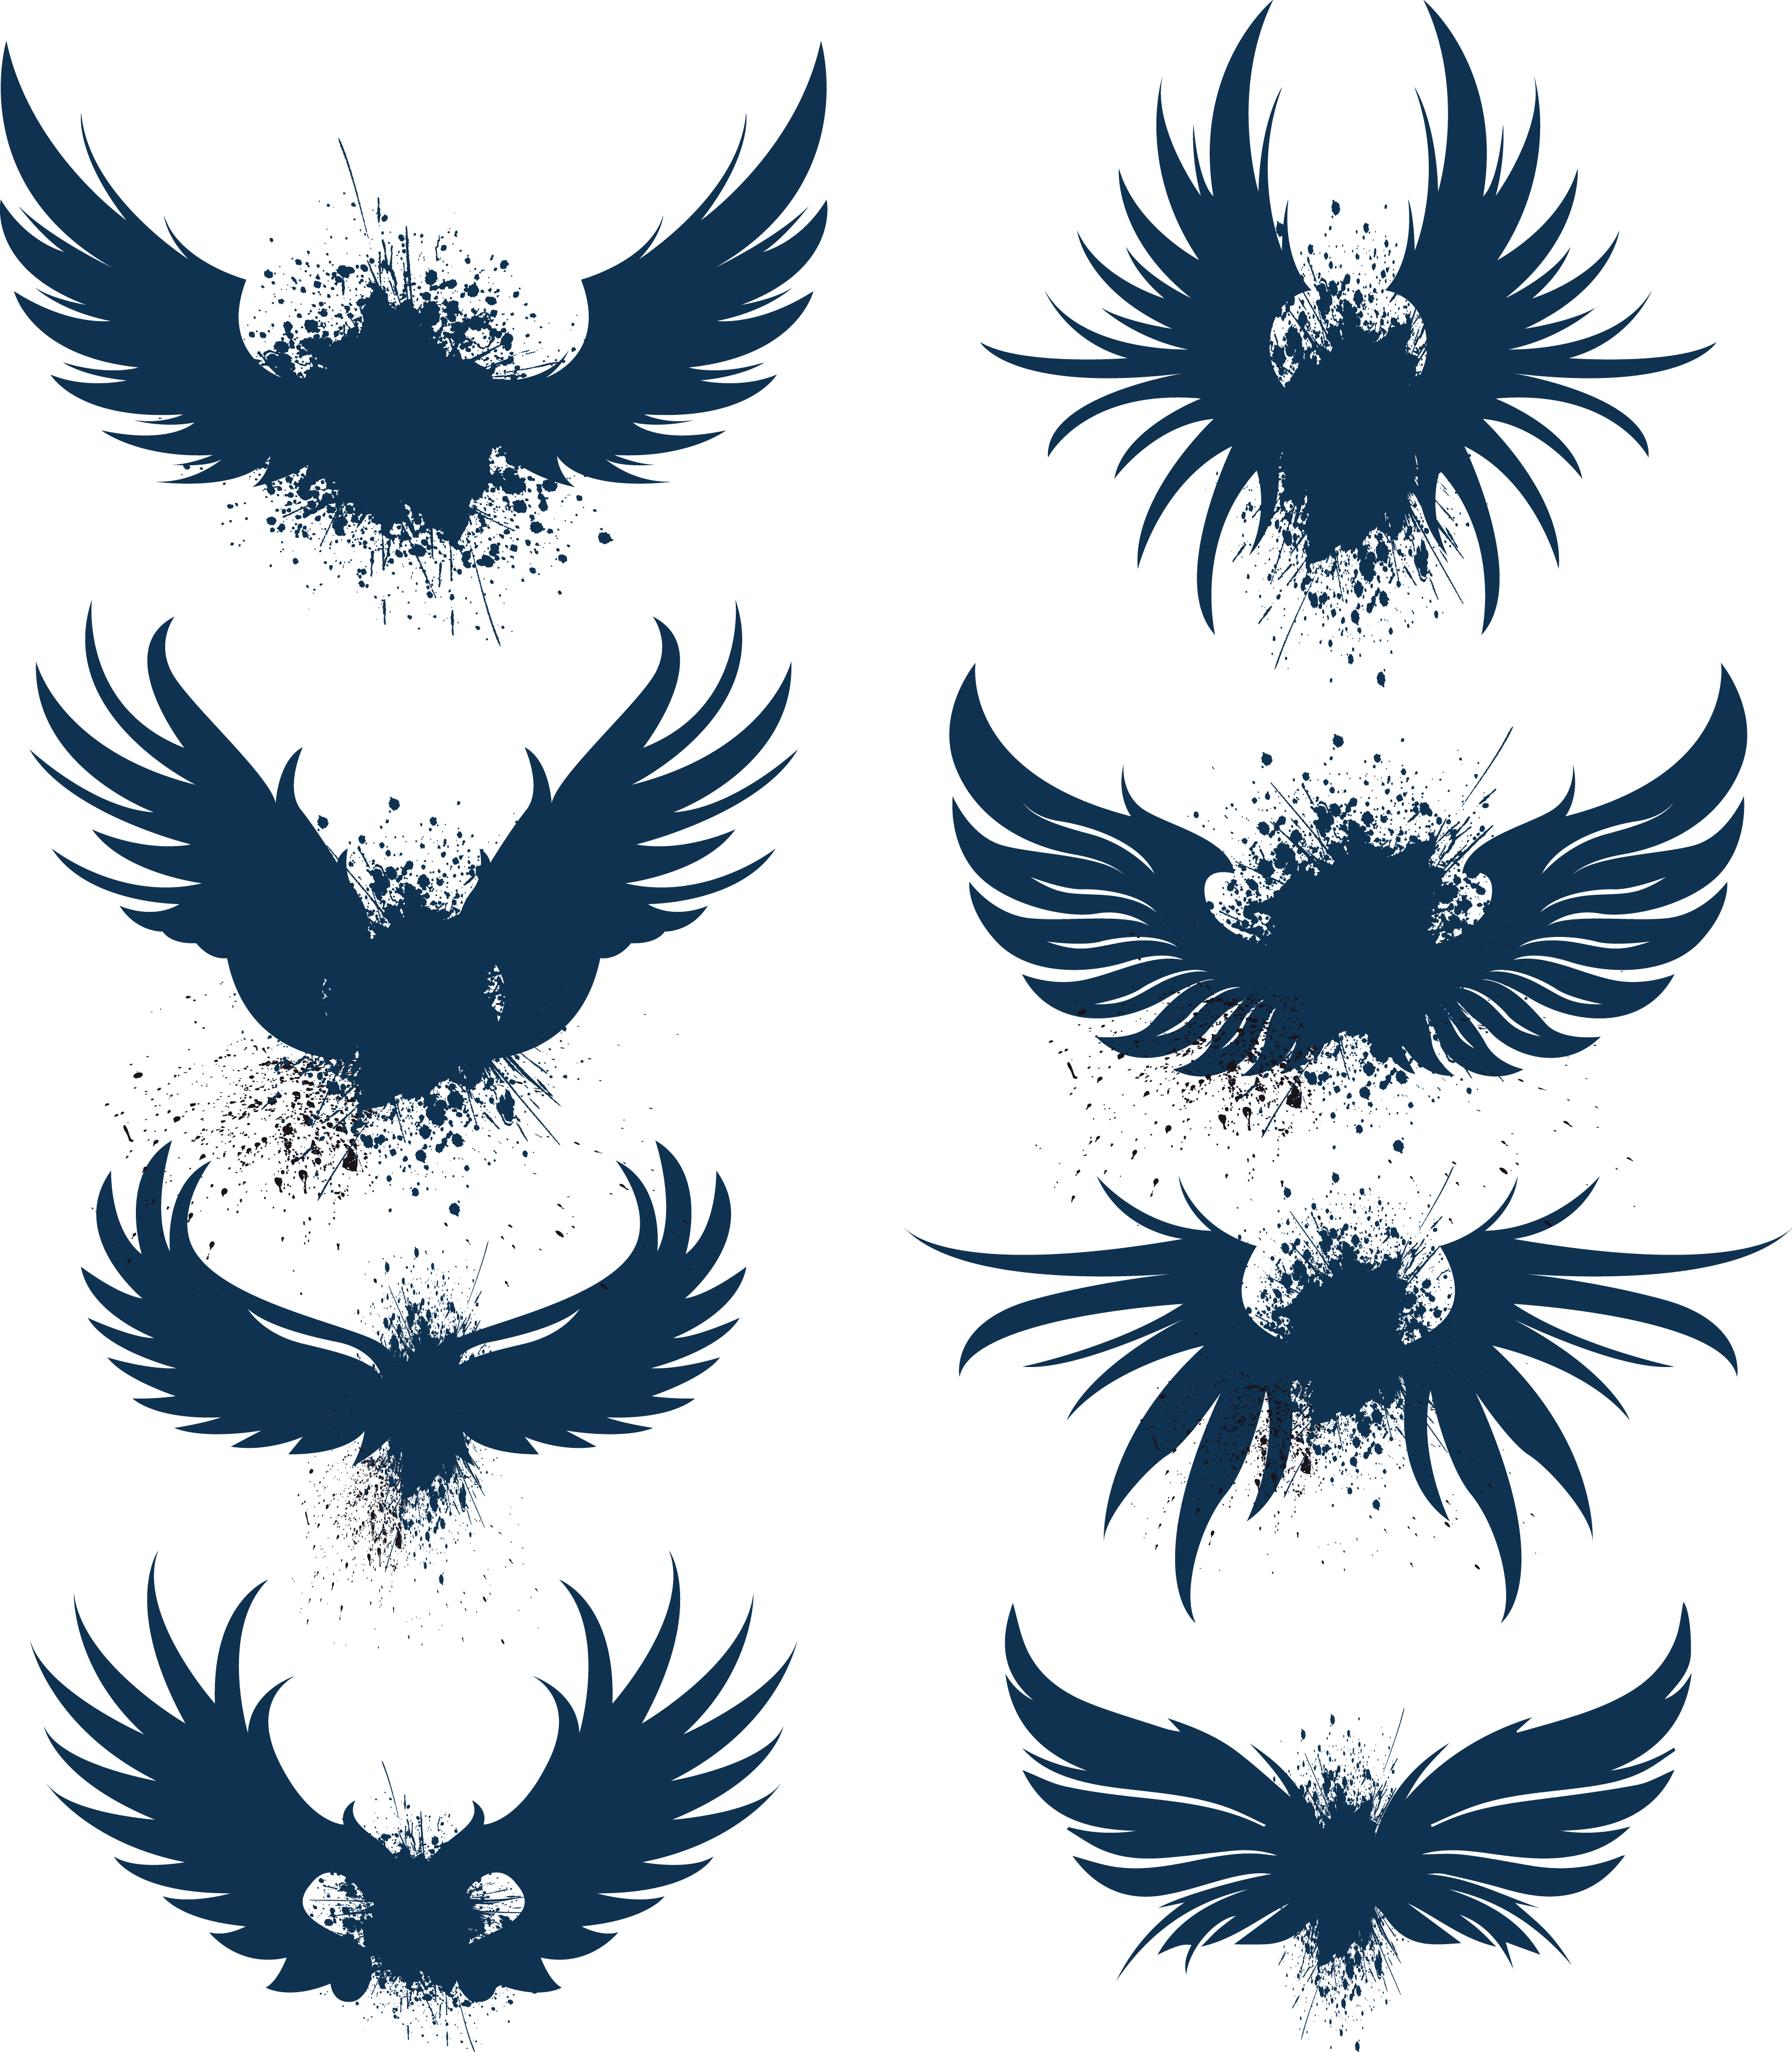 Wing clipart bird wing. Eagle logo blue wings